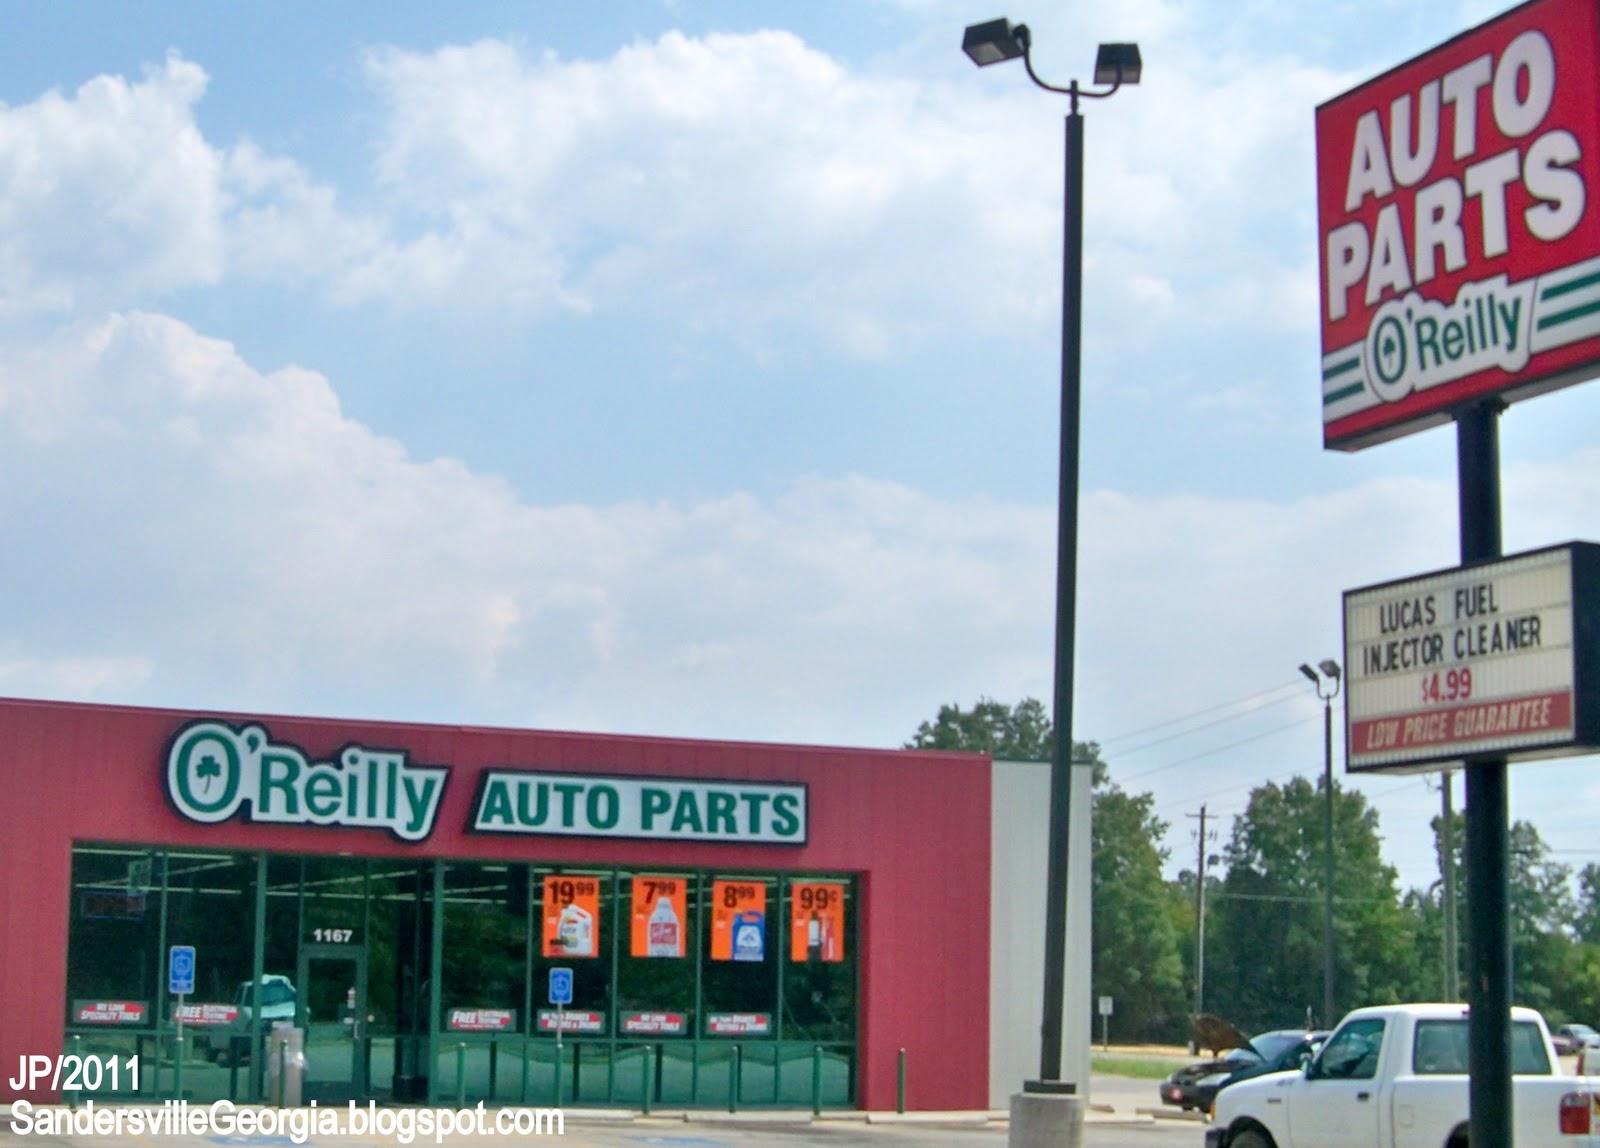 Complete O'Reilly Auto Parts Store Locator. List of all O'Reilly Auto Parts locations. Find hours of operation, street address, driving map, and contact information.